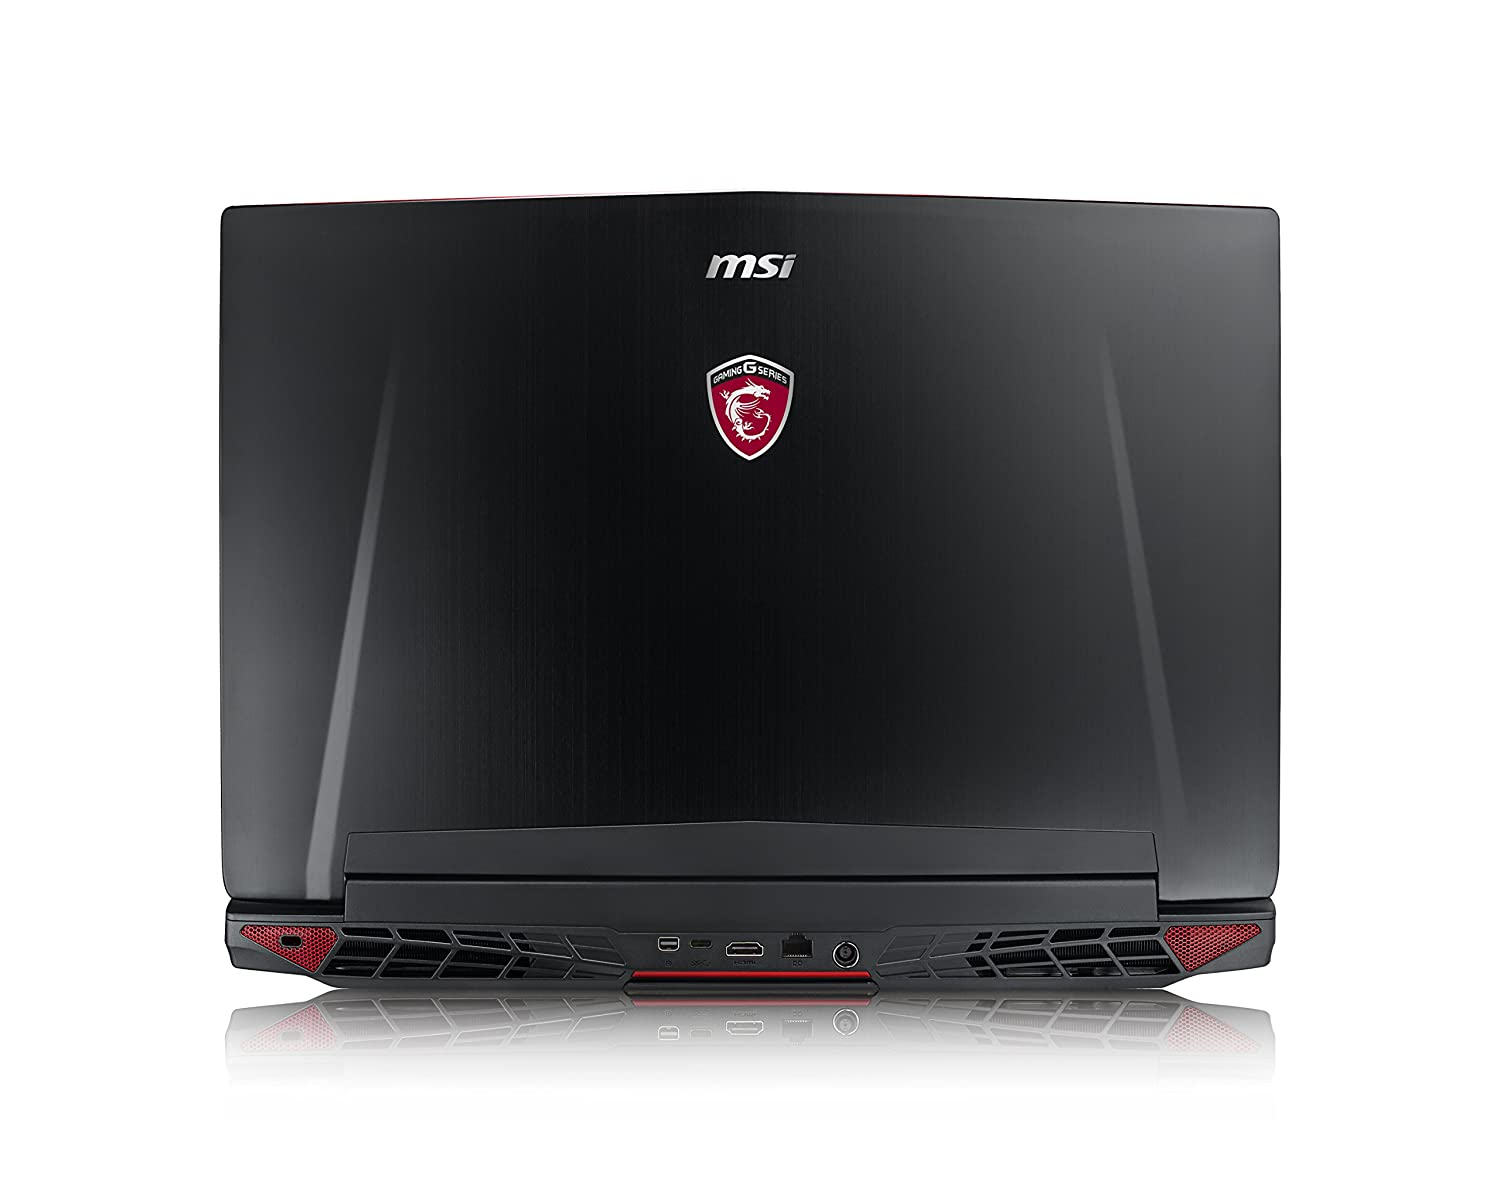 MSI GT72VR 6RD Dominator Tobii EyeX Windows 8 X64 Treiber